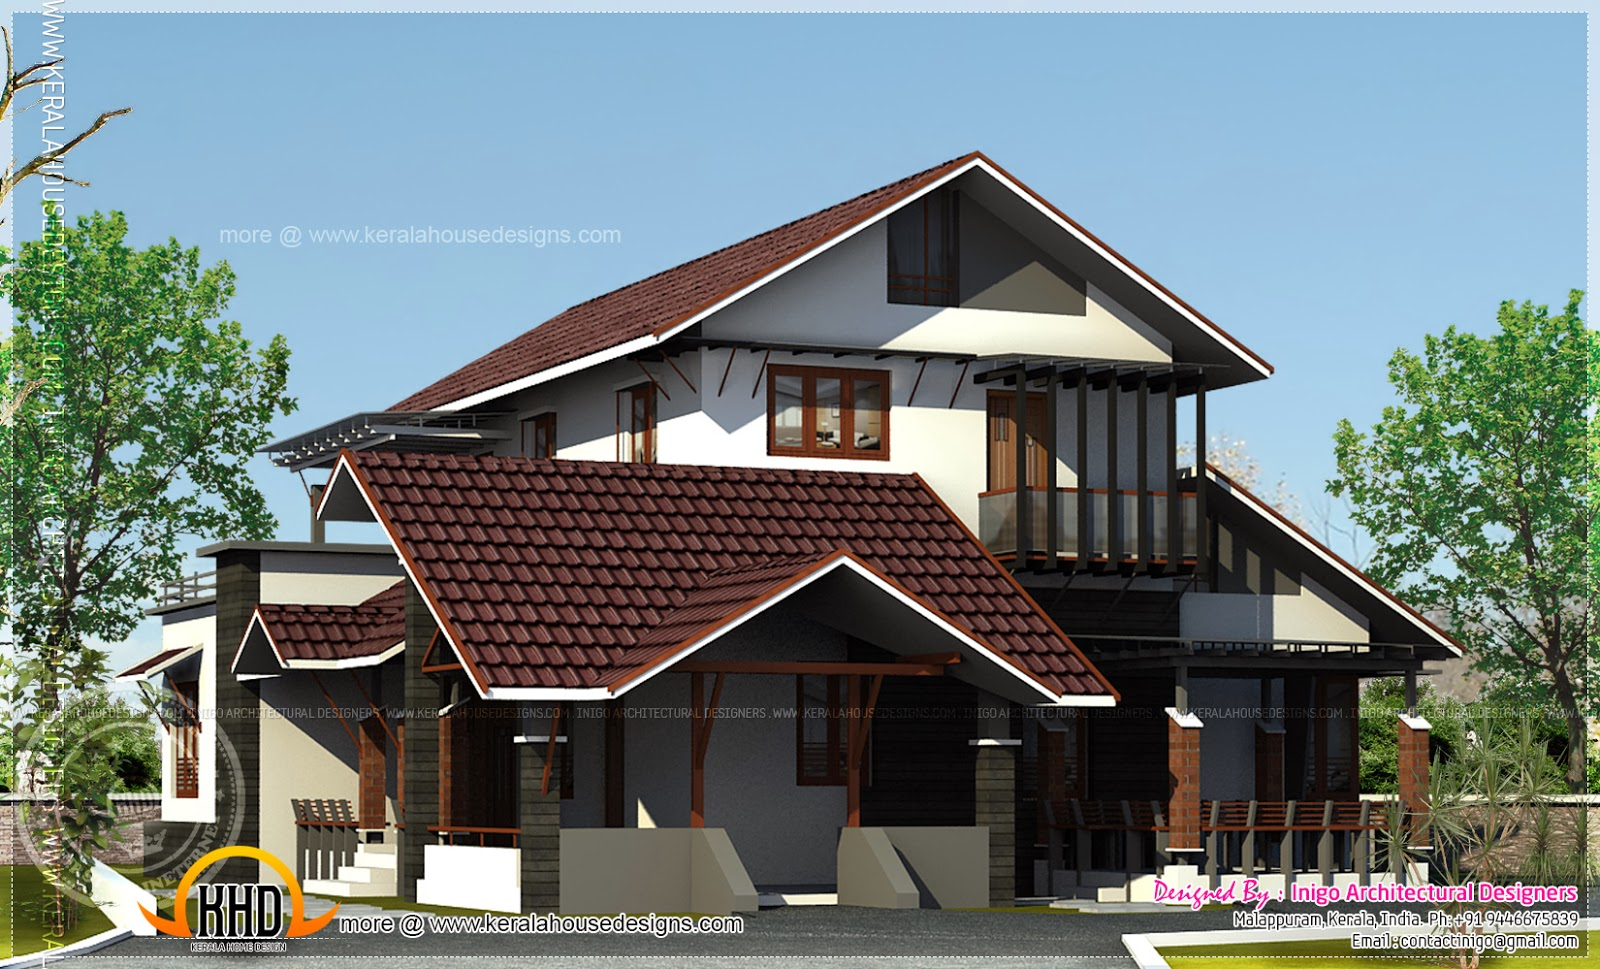 1500 4 bed room home renovation kerala home for 1500 sq ft house plans kerala